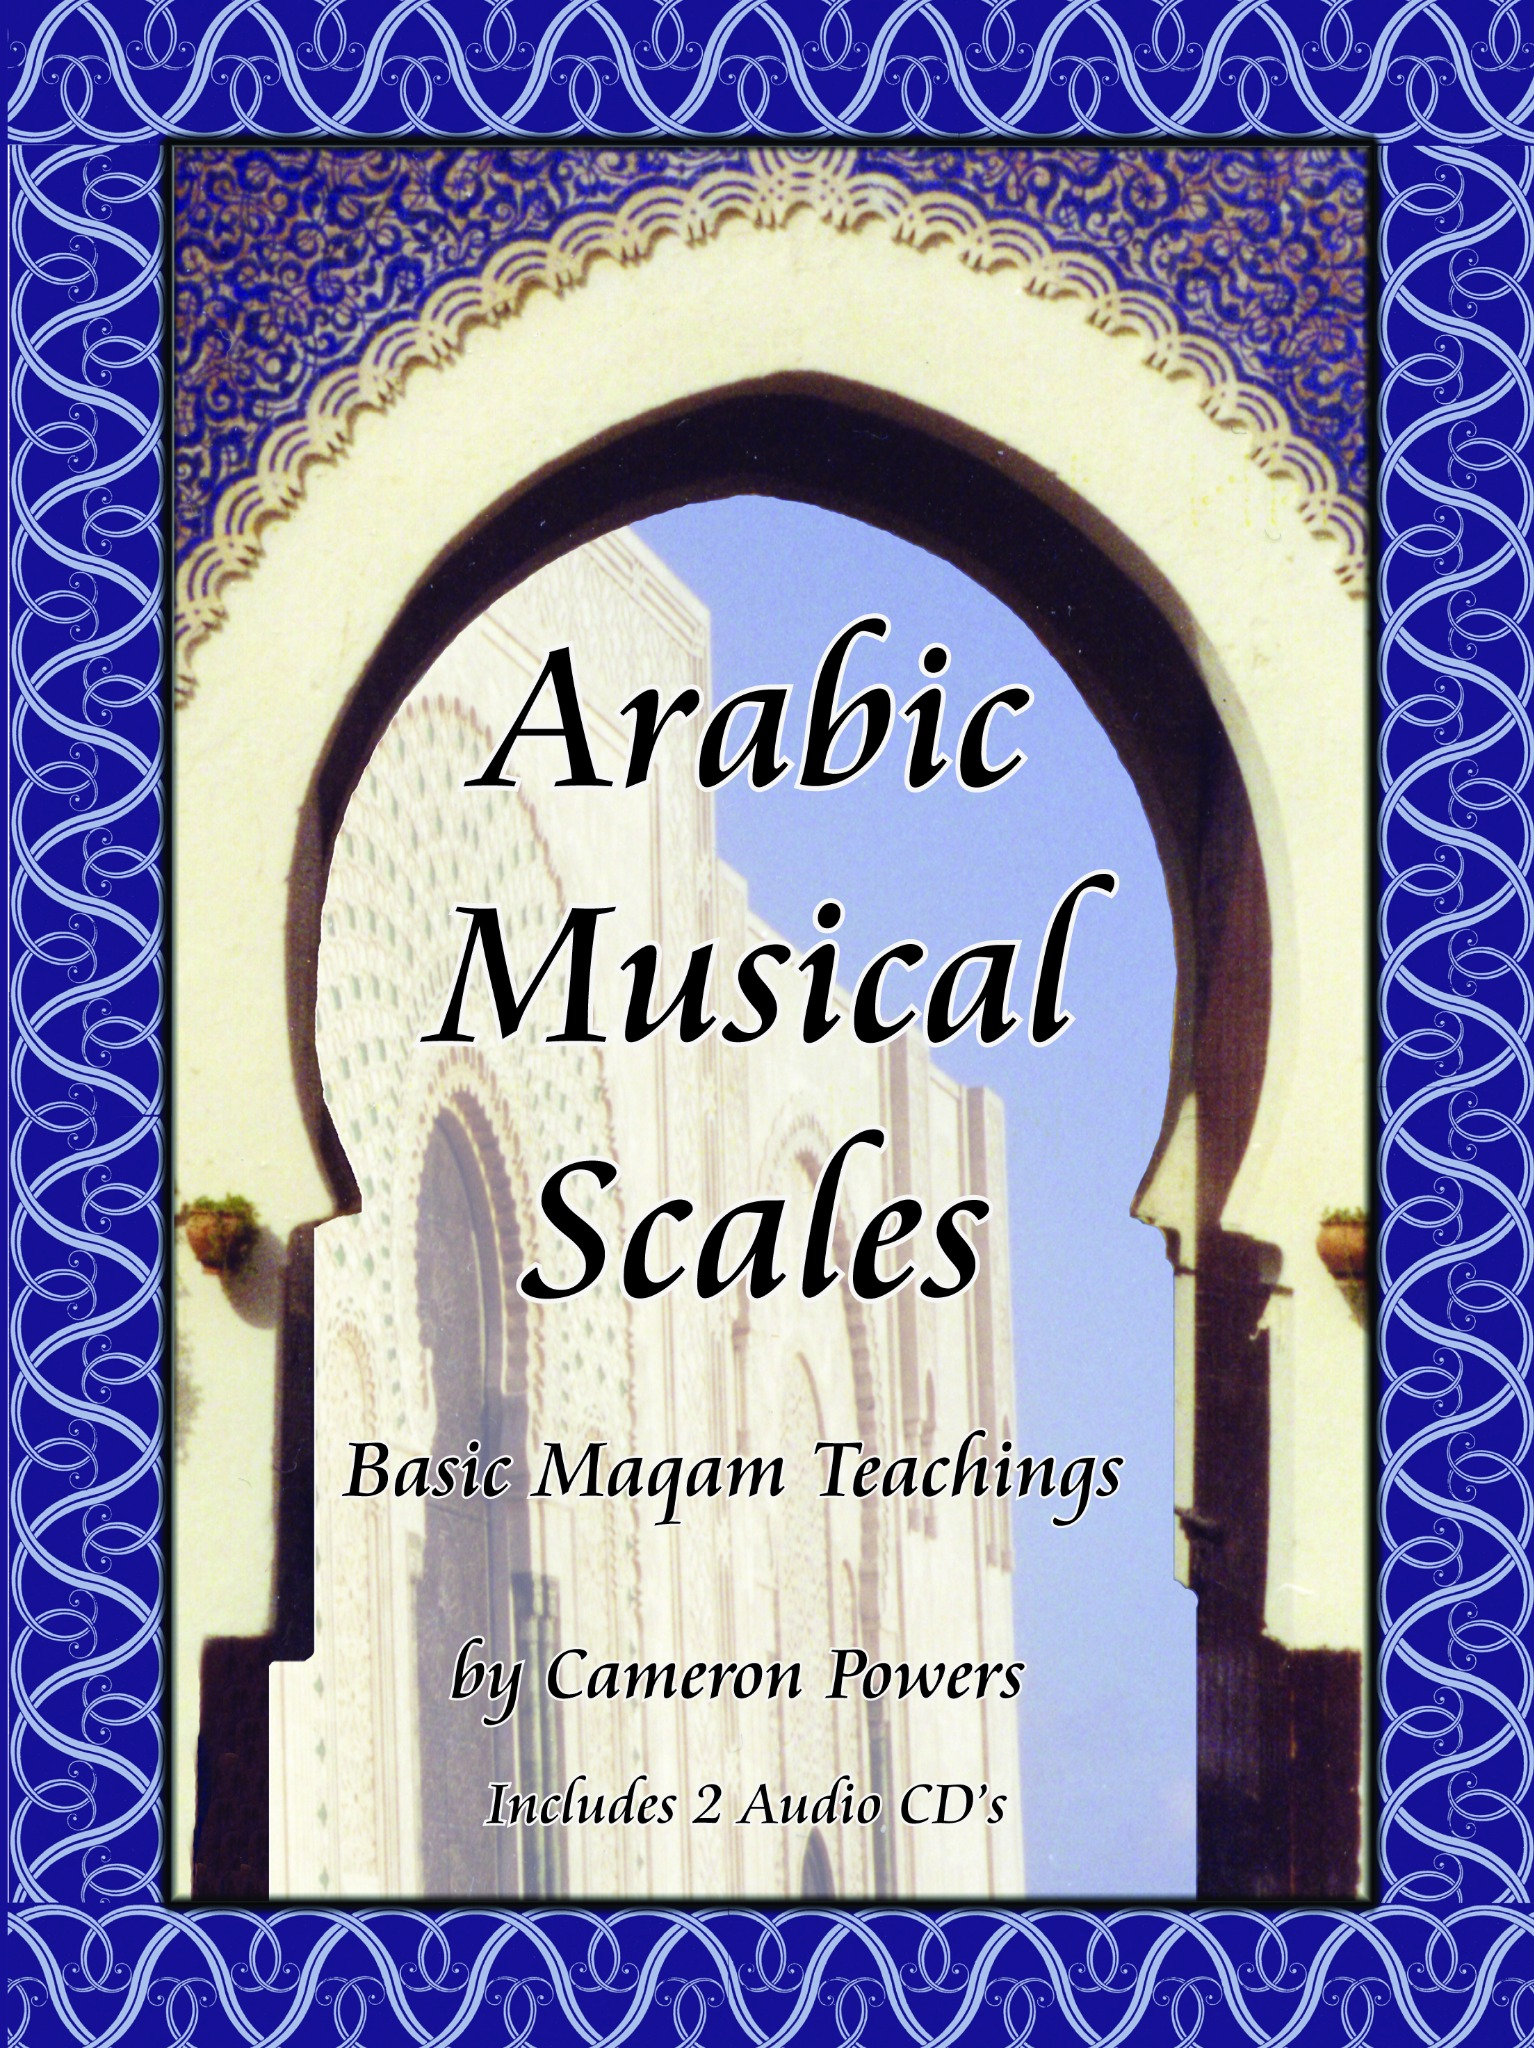 Downloadable Pdf and Mp3 files. Arabic Music Scales: Basic Maqam Teachings  with 2 CD's - cameron powers